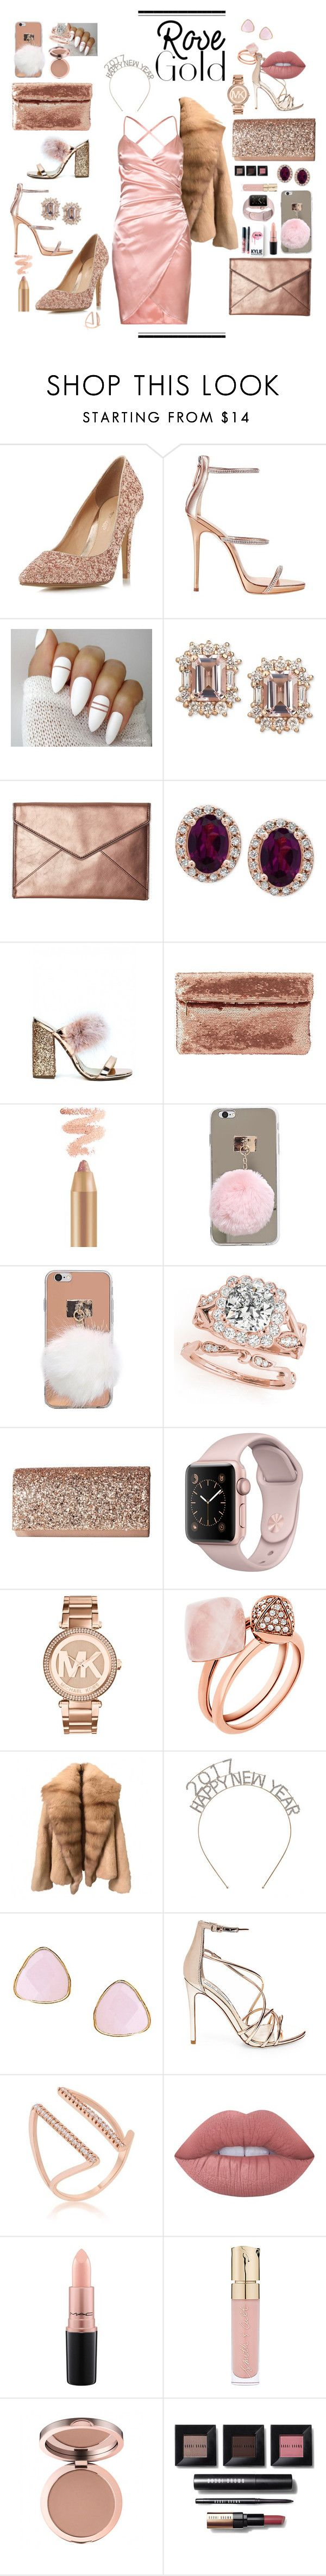 Russé Gold by bri-n-ani-official ❤ liked on Polyvore featuring Kylie Cosmetics, Head Over Heels by Dune, Giuseppe Zanotti, Rebecca Minkoff, Effy Jewelry, Charlotte Russe, Jessica McClintock, Michael Kors, Ottoman Hands and Steve Madden